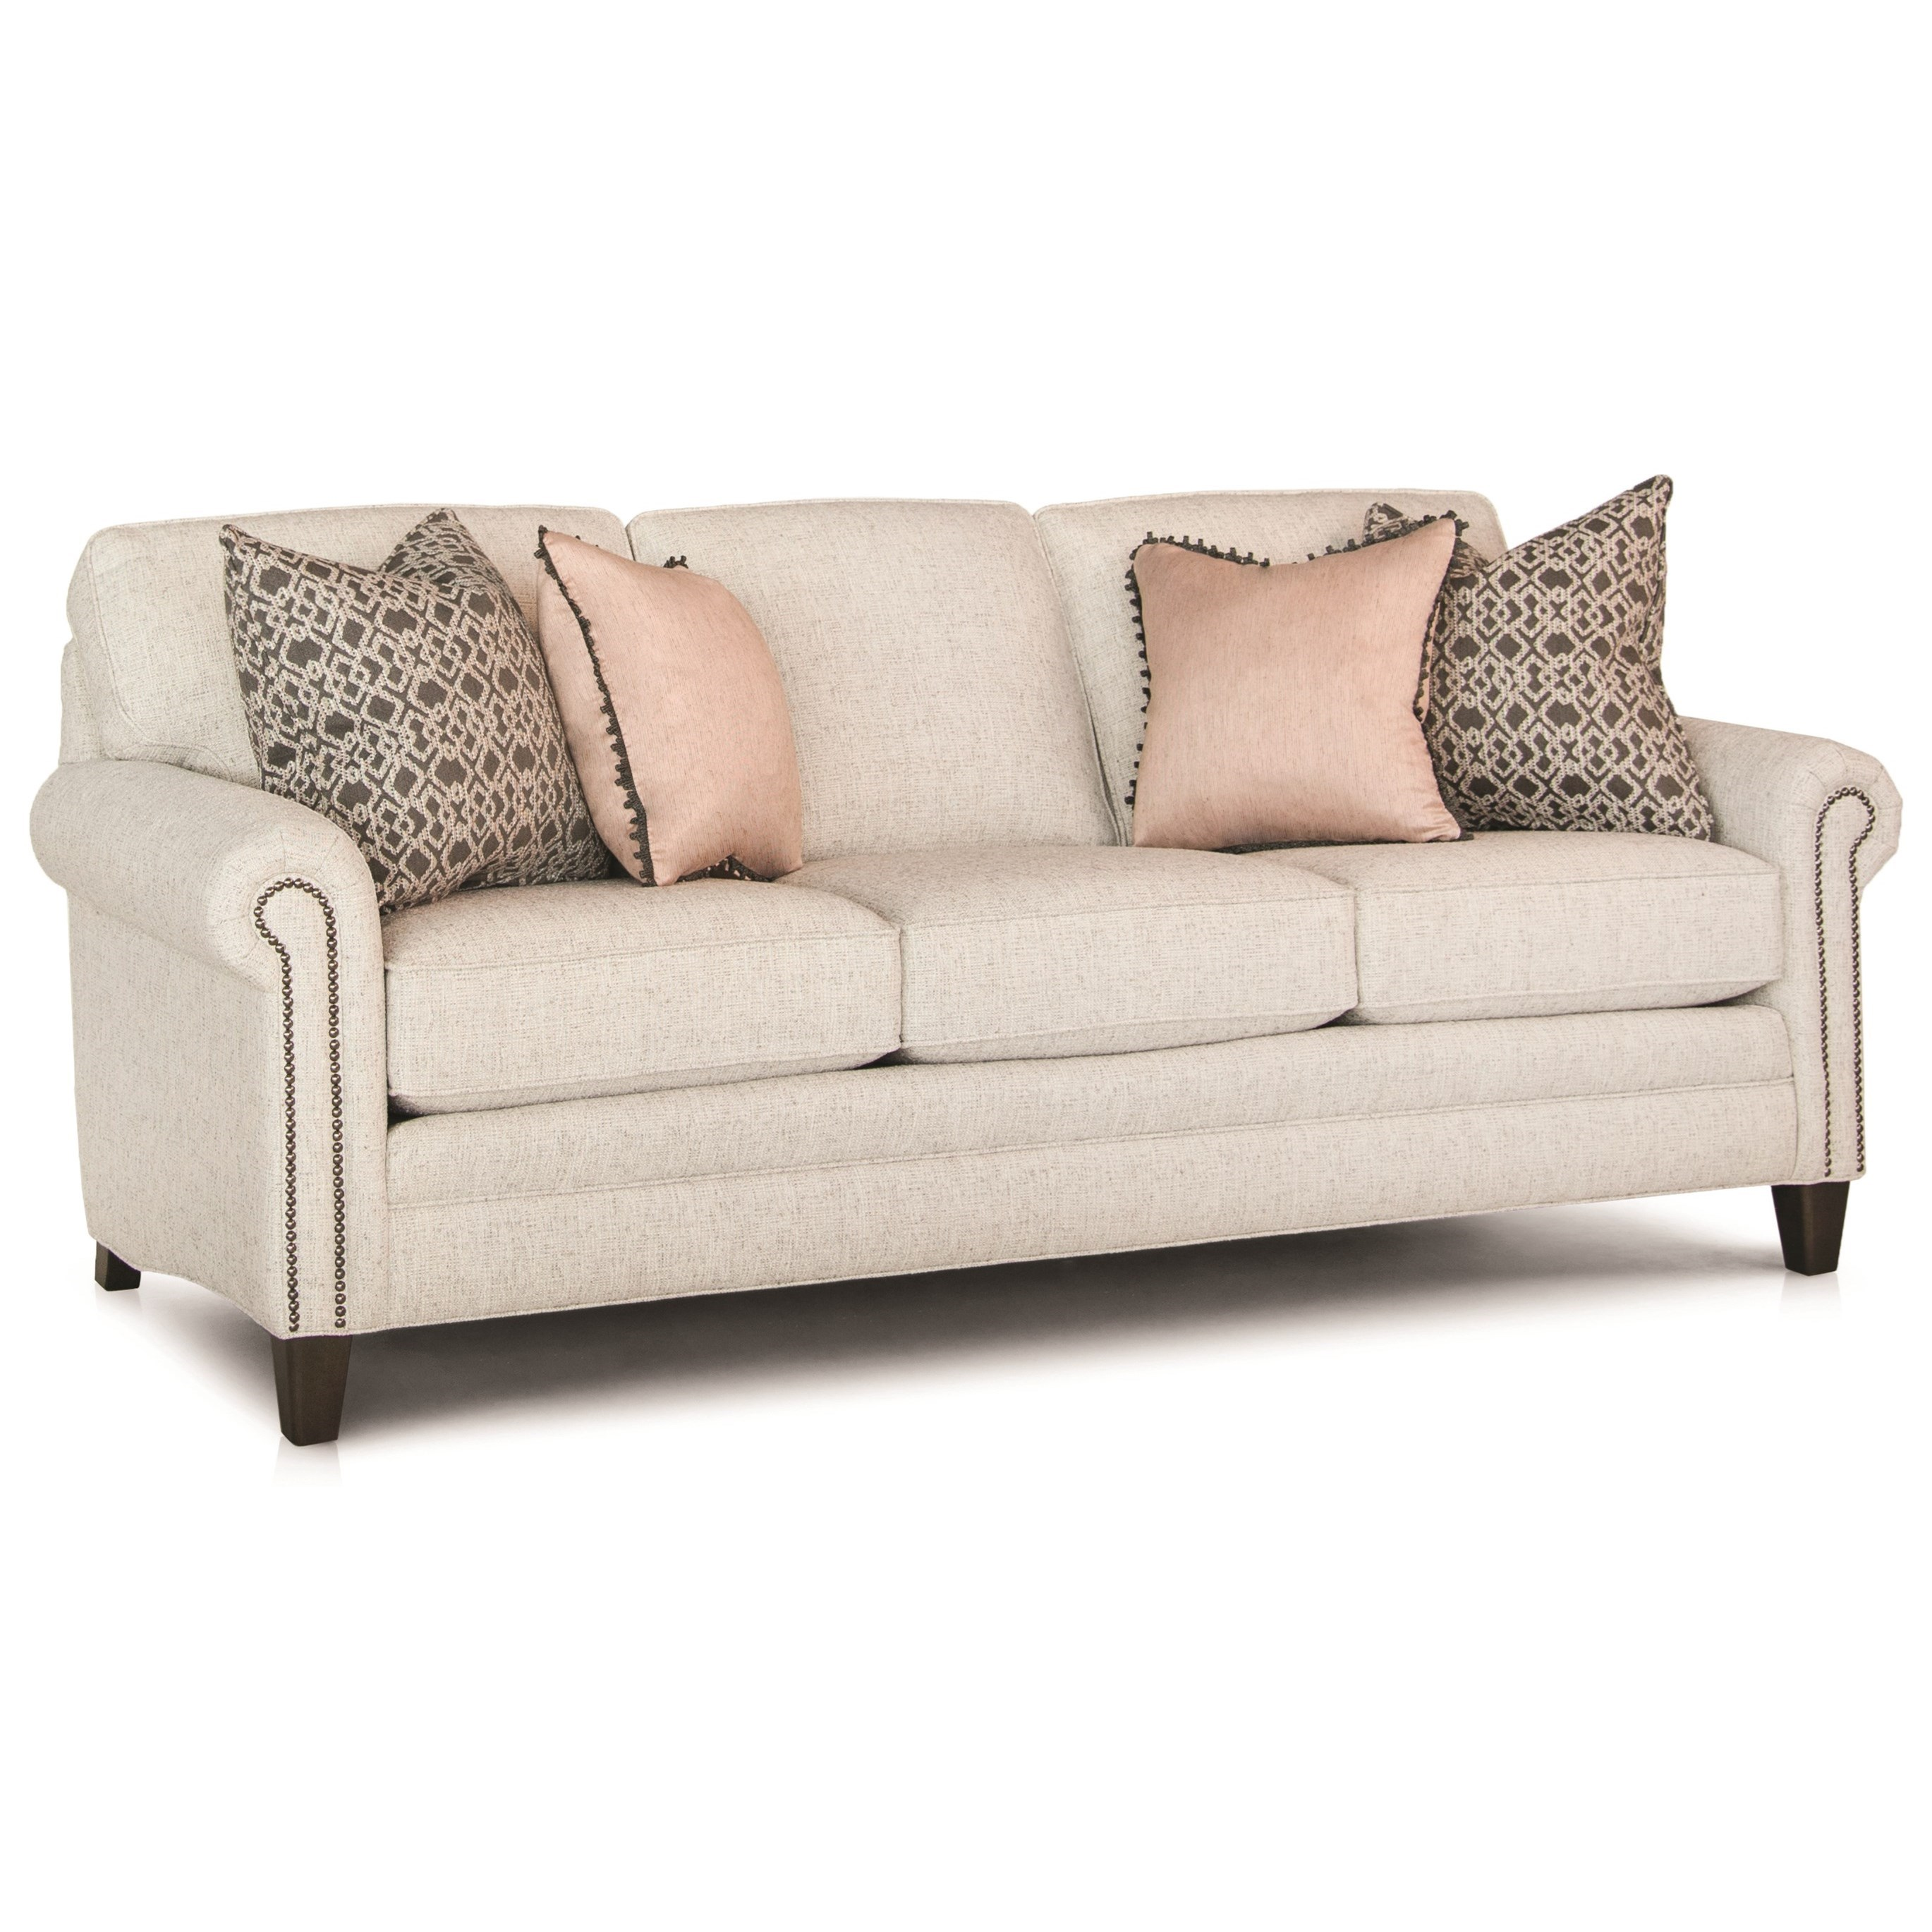 395 Style Group Sofa by Smith Brothers at Saugerties Furniture Mart